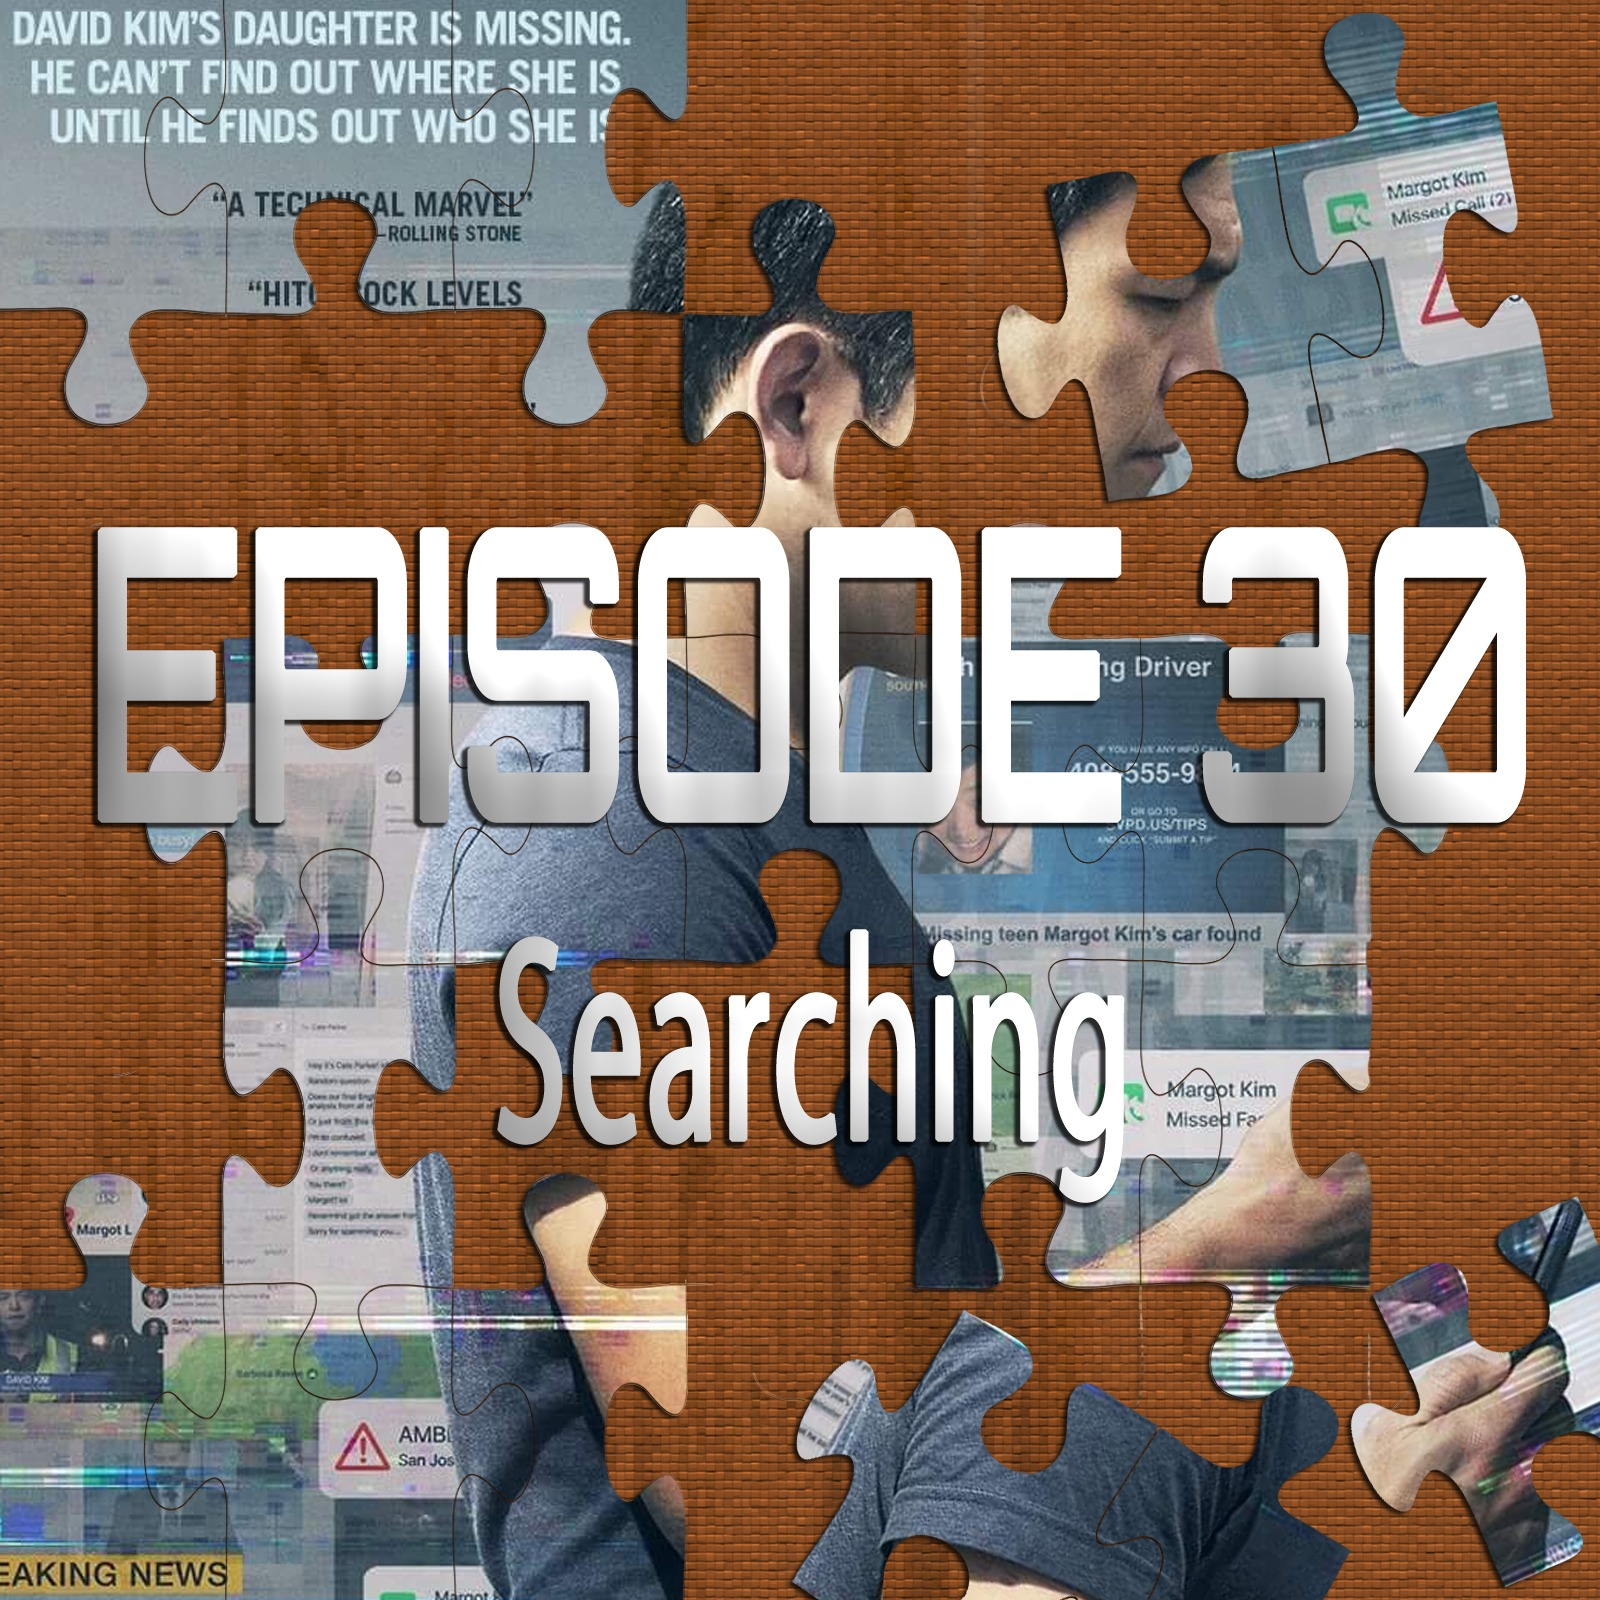 Searching (Featuring Jacob Tiranno)